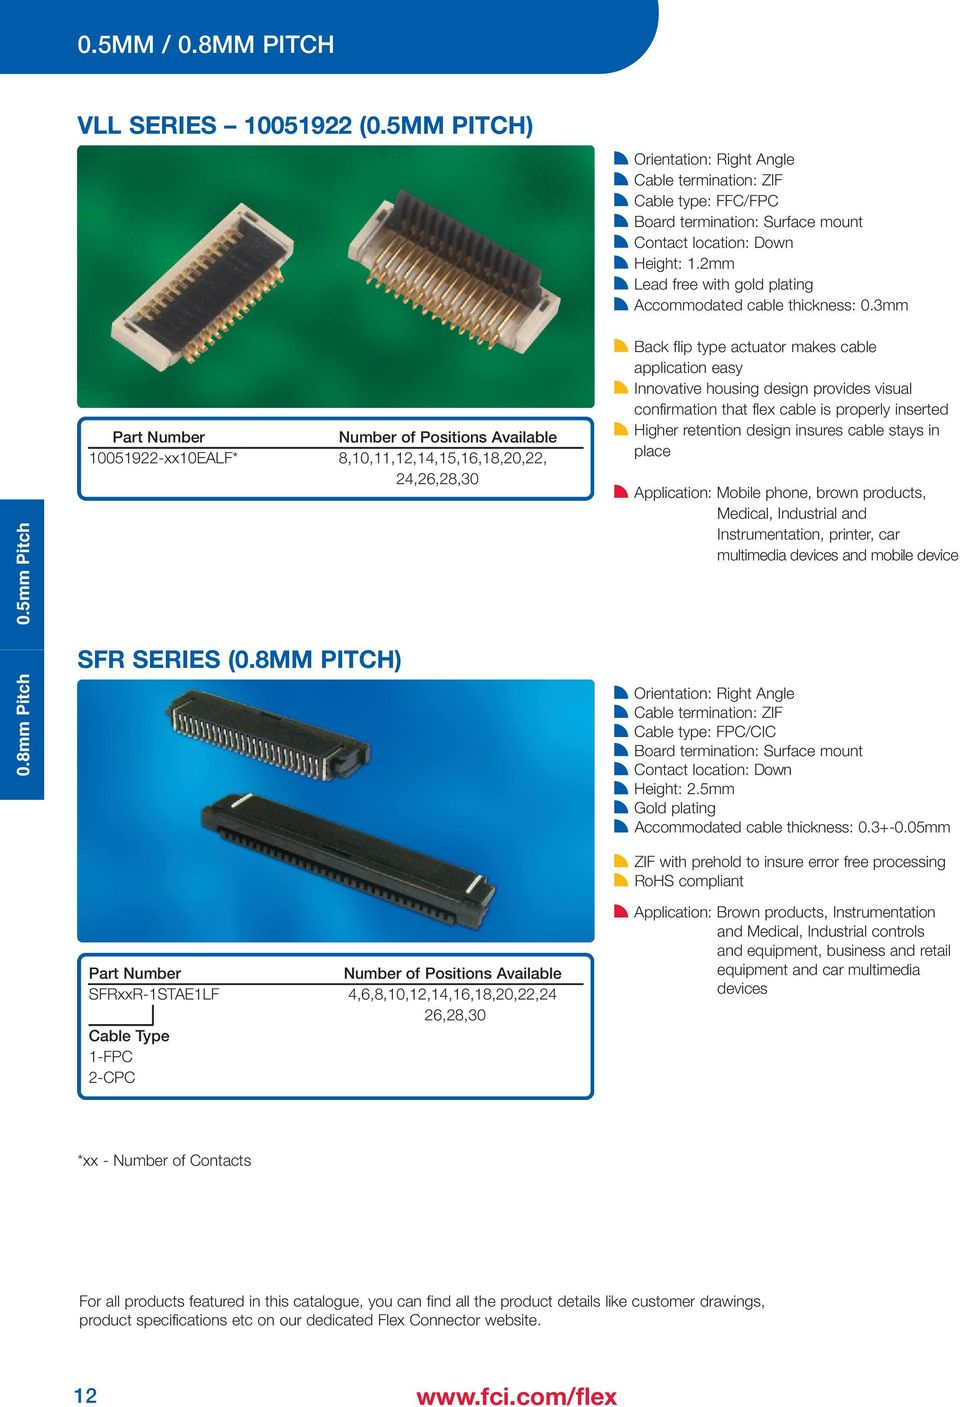 ELECTRONICS CONNECTORS FOR FLEXIBLE CIRCUITRY FFC/FPC/CIC - PDF